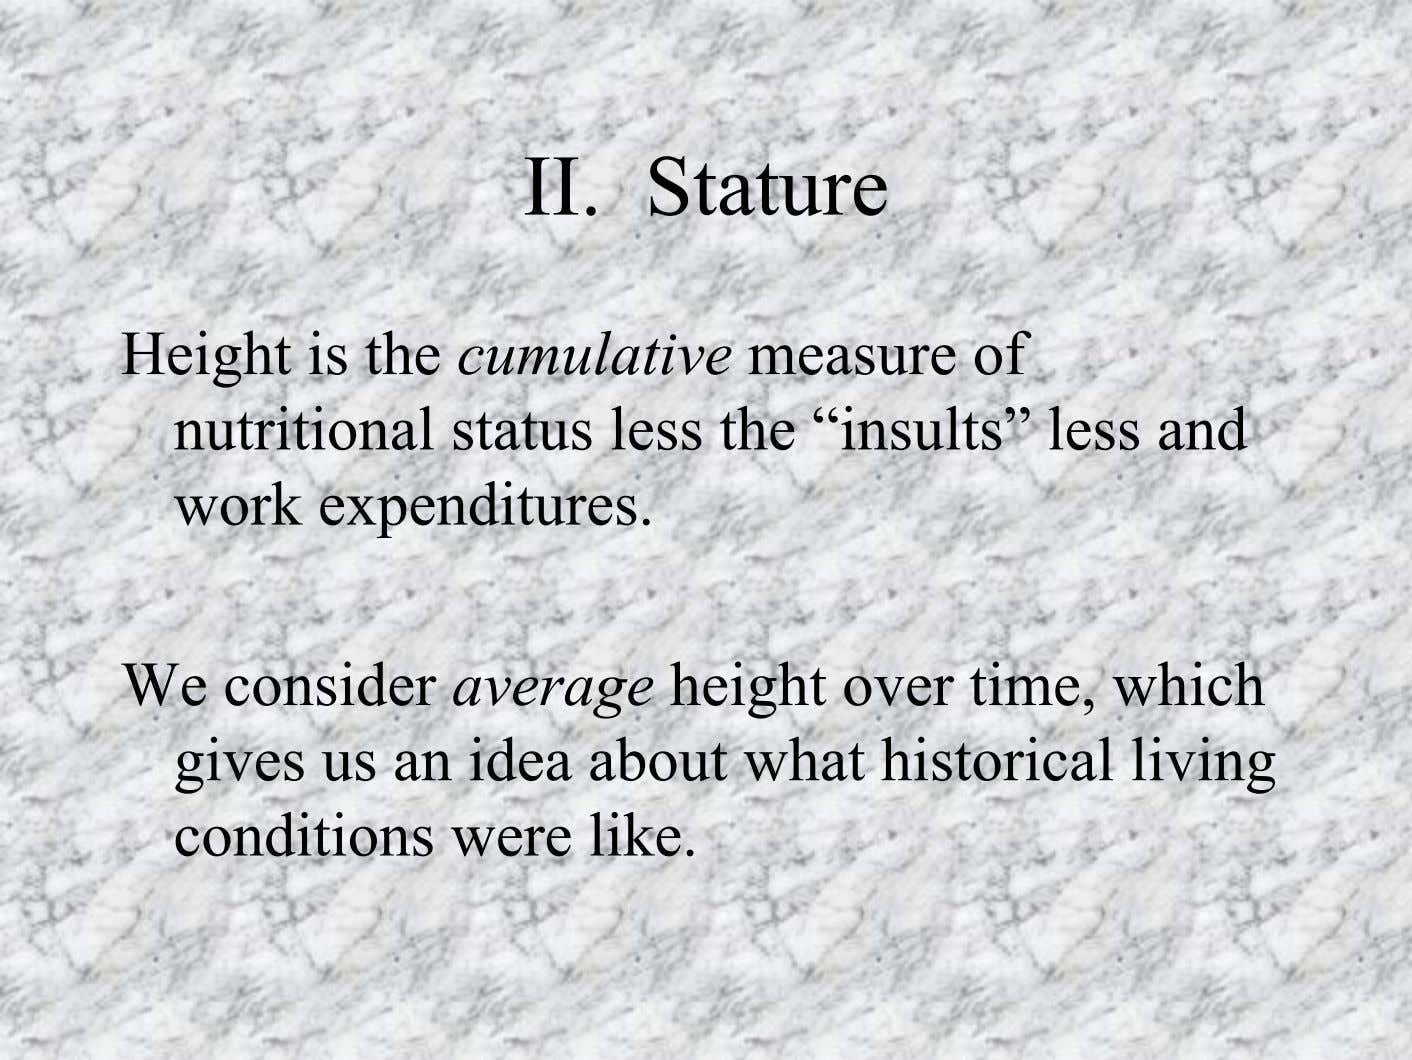 II. Stature Height is the cumulative measure of nutritional status less the ìinsultsî less and